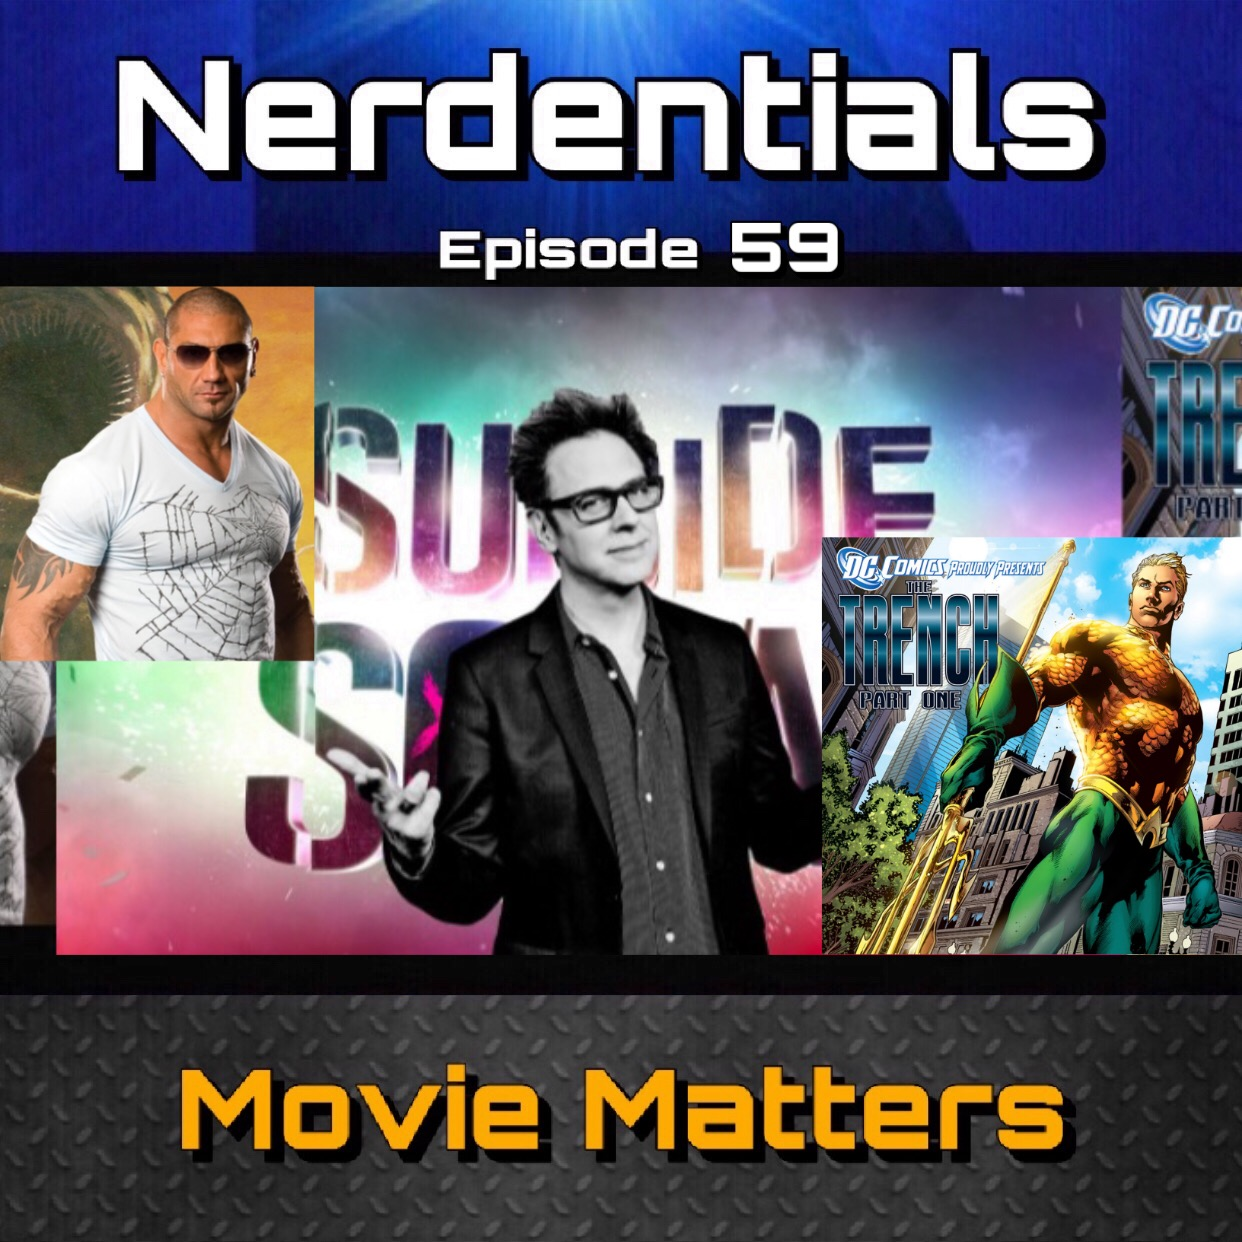 - Welcome to Nerdentials! Your weekly dose of the nerdy essentials. Covering Film, TV, Video Games and Comics.This week your nerd hosts Joe, Matt, Nick and Lynn cover some Movie Matters. First we talk an Aquaman Spin-off, the Trench? Then Dive into DC's announcement of James Gunn and his new friendships. Finally finishing off with some debates over the Dune Remake Casting!